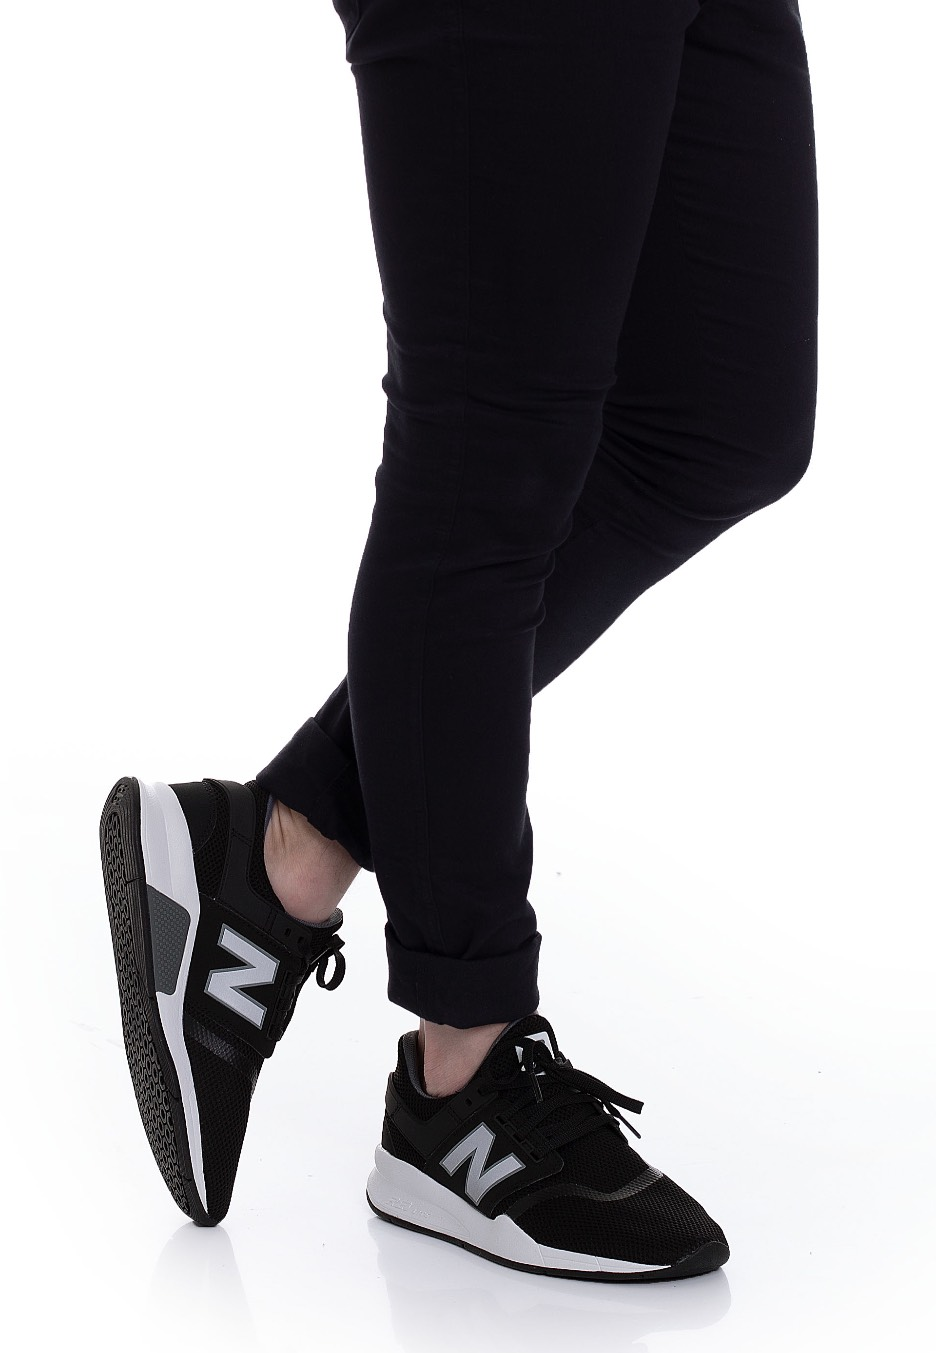 New Balance - MS247 D FF Black - Shoes - Impericon.com Worldwide